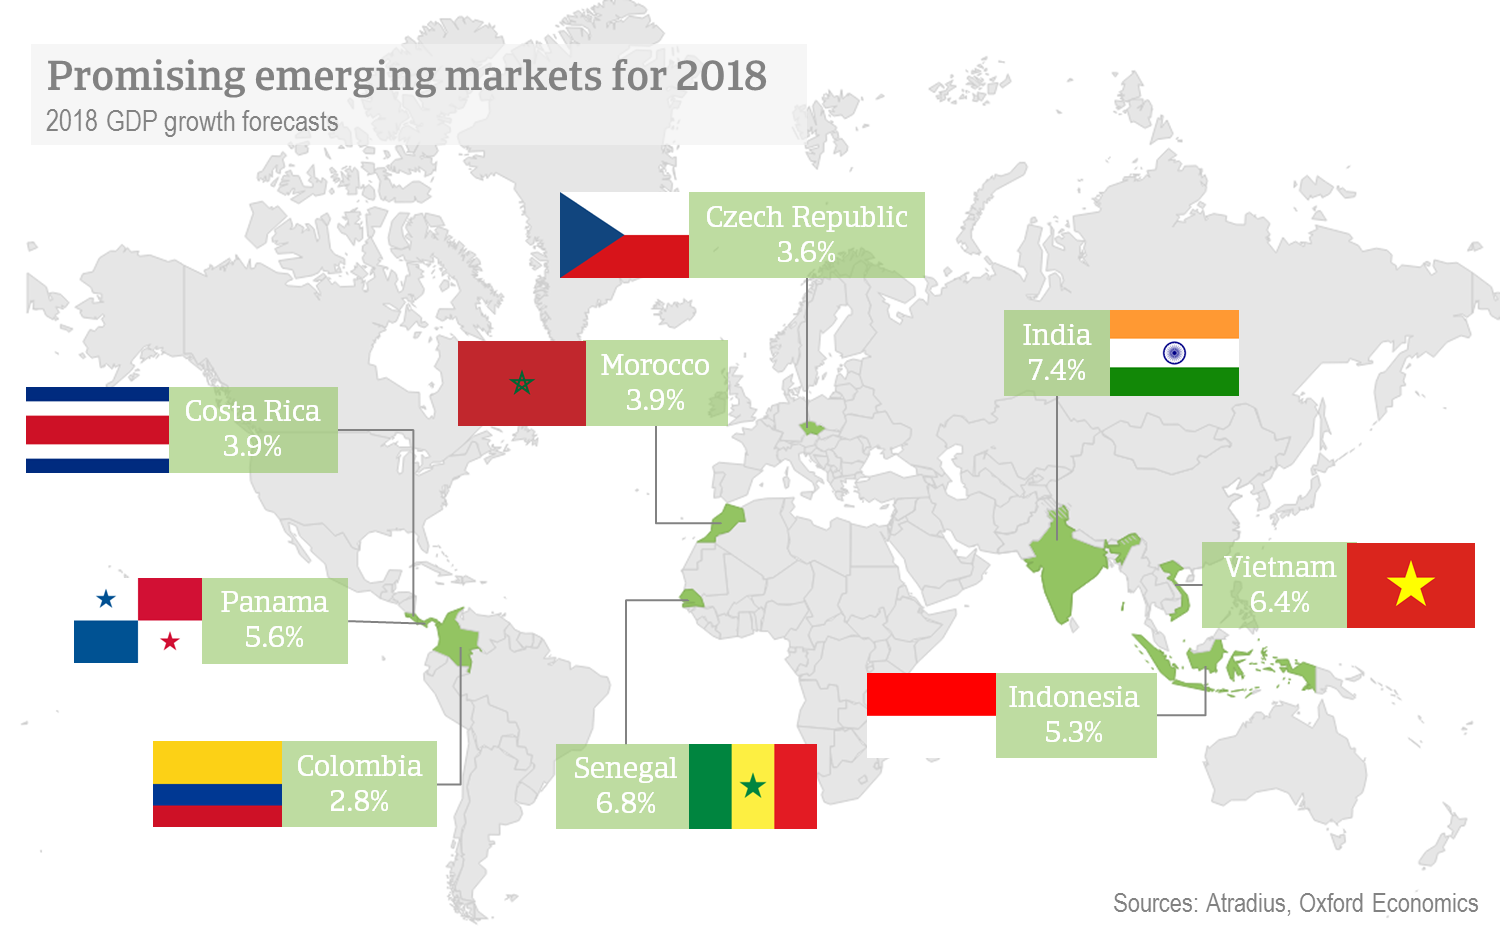 Promising emerging markets for 2018